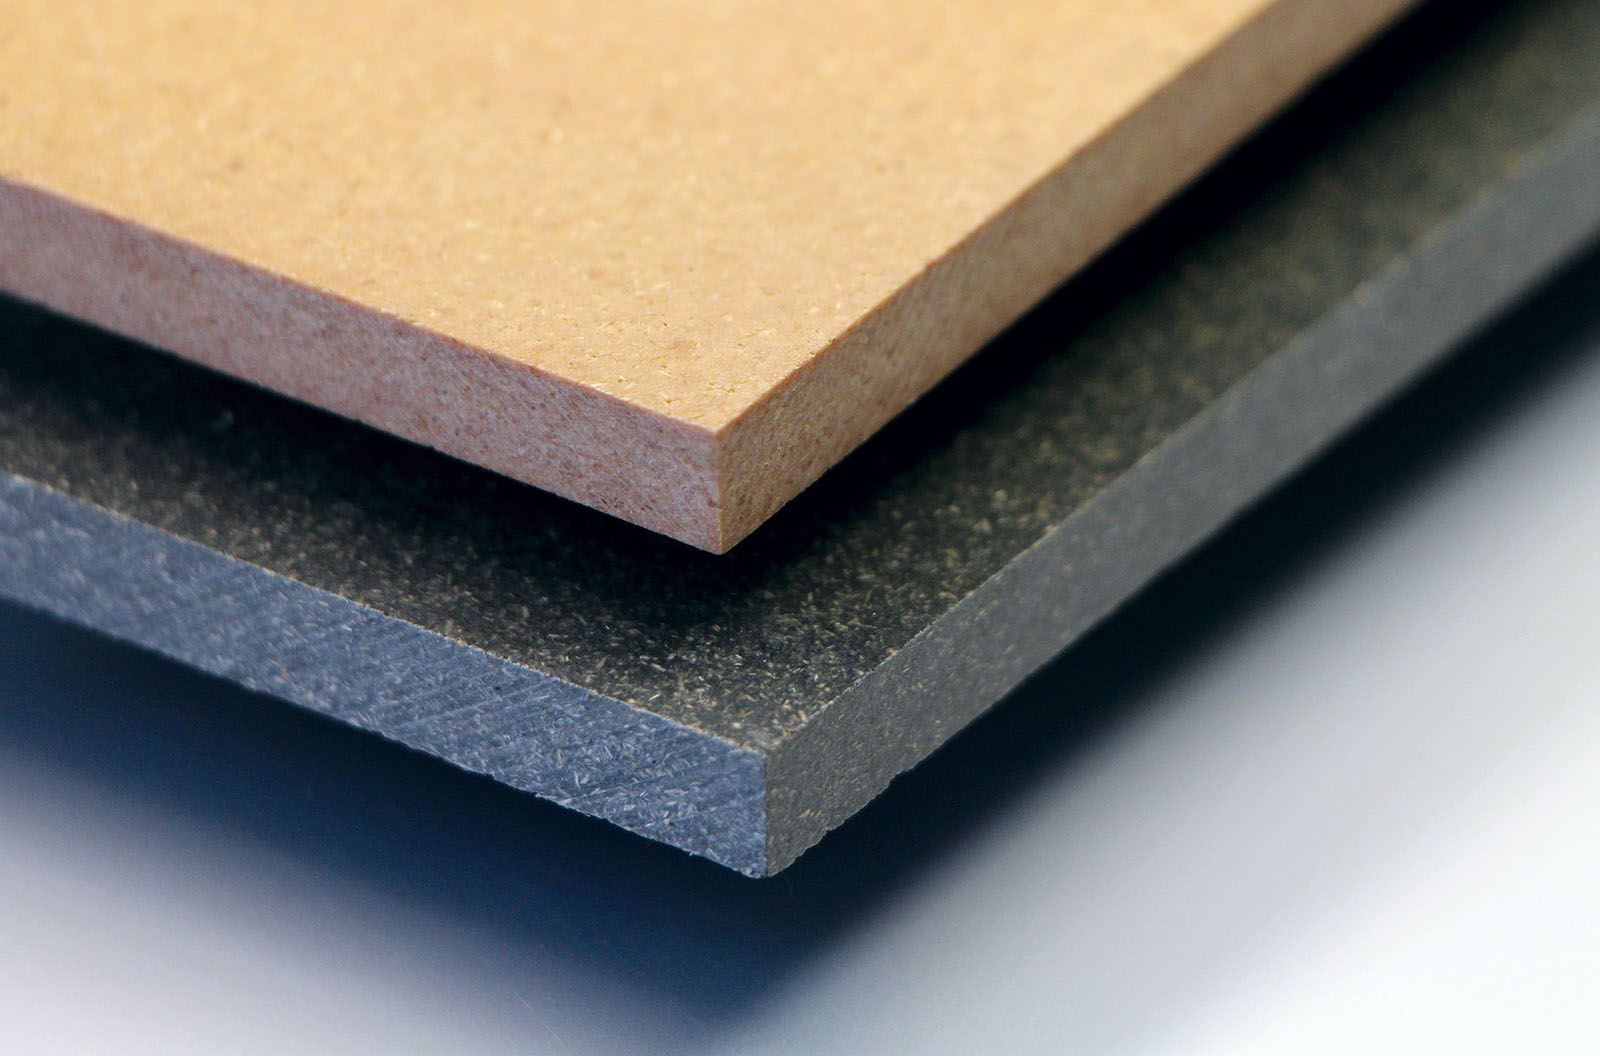 Wood Polymer Composite Board : Wood polymer composite furniture with low flammability